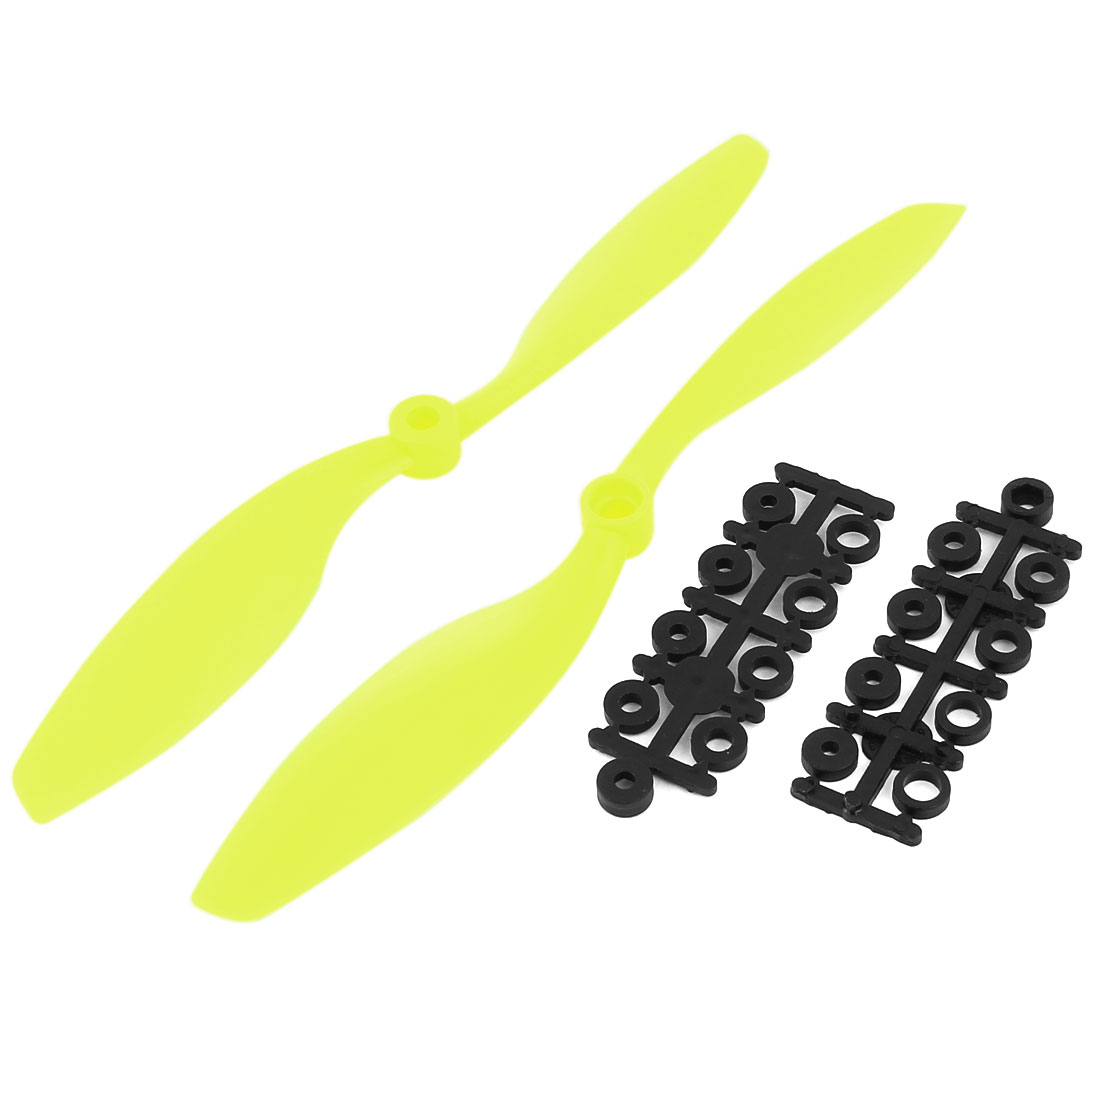 "2 Pcs 8""x 4.5"" 8045 Nylon CW CCW Propeller Prop Yellow For Multicopter Quad Copter"